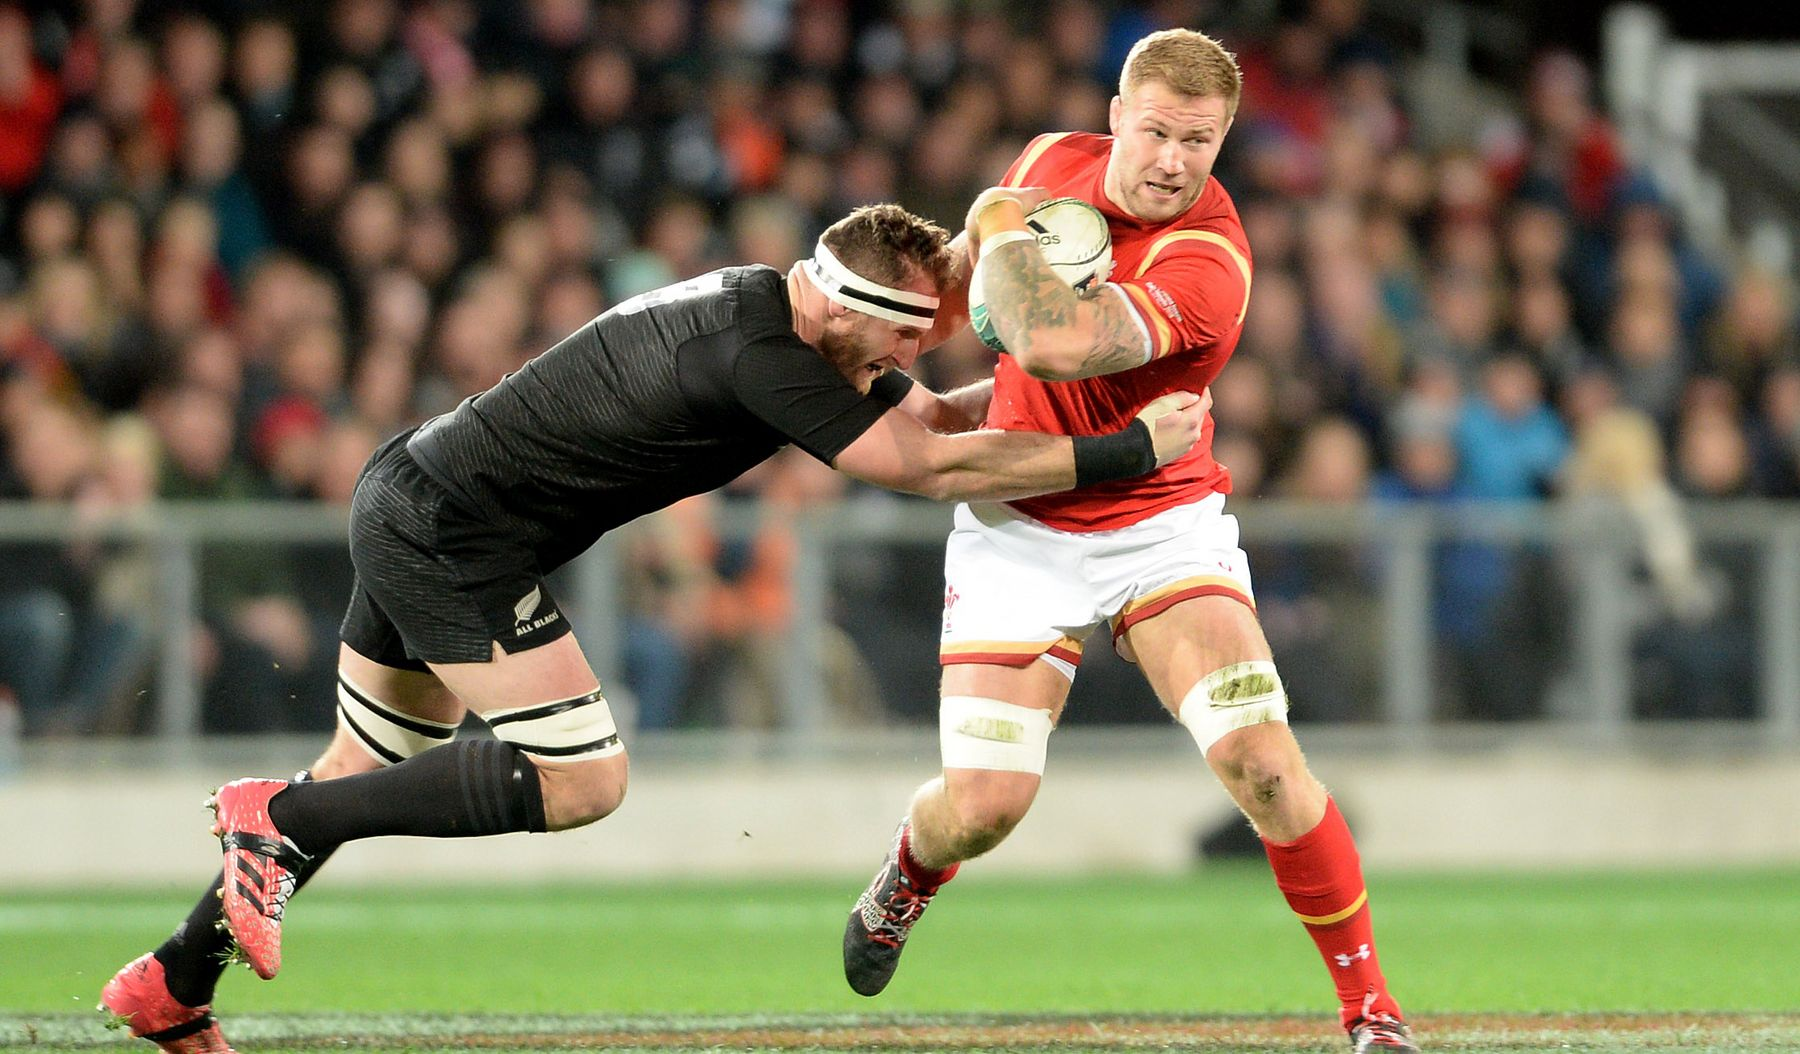 Moriarty looking to build on New Zealand experience